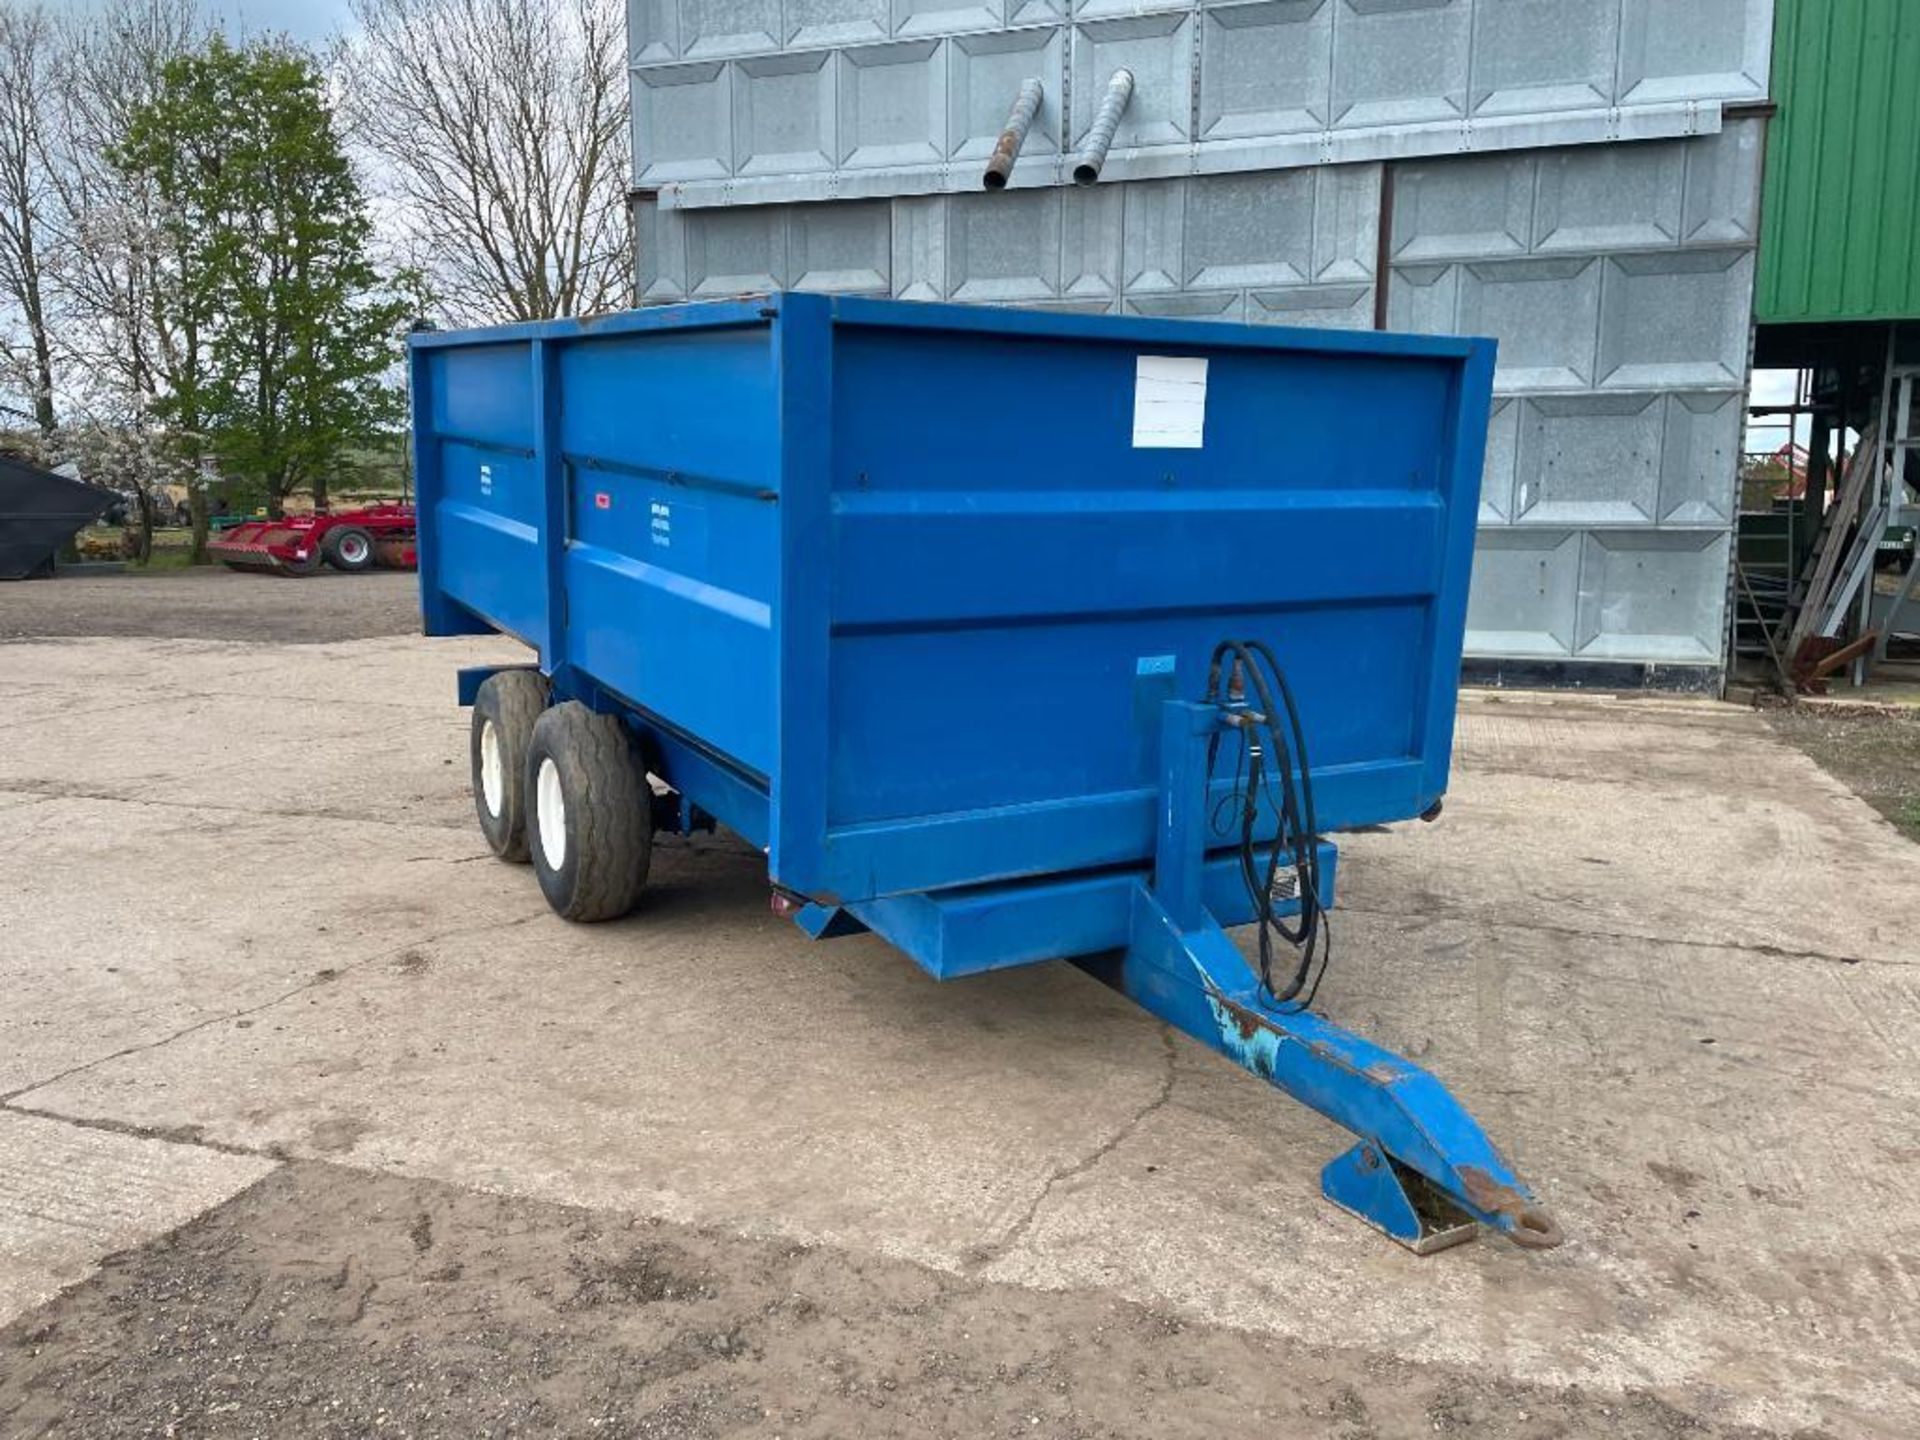 1986 AS Marston 8t twin axle grain trailer, manual tailgate and grain chute on 11.5/80-15.3 wheels a - Image 7 of 15